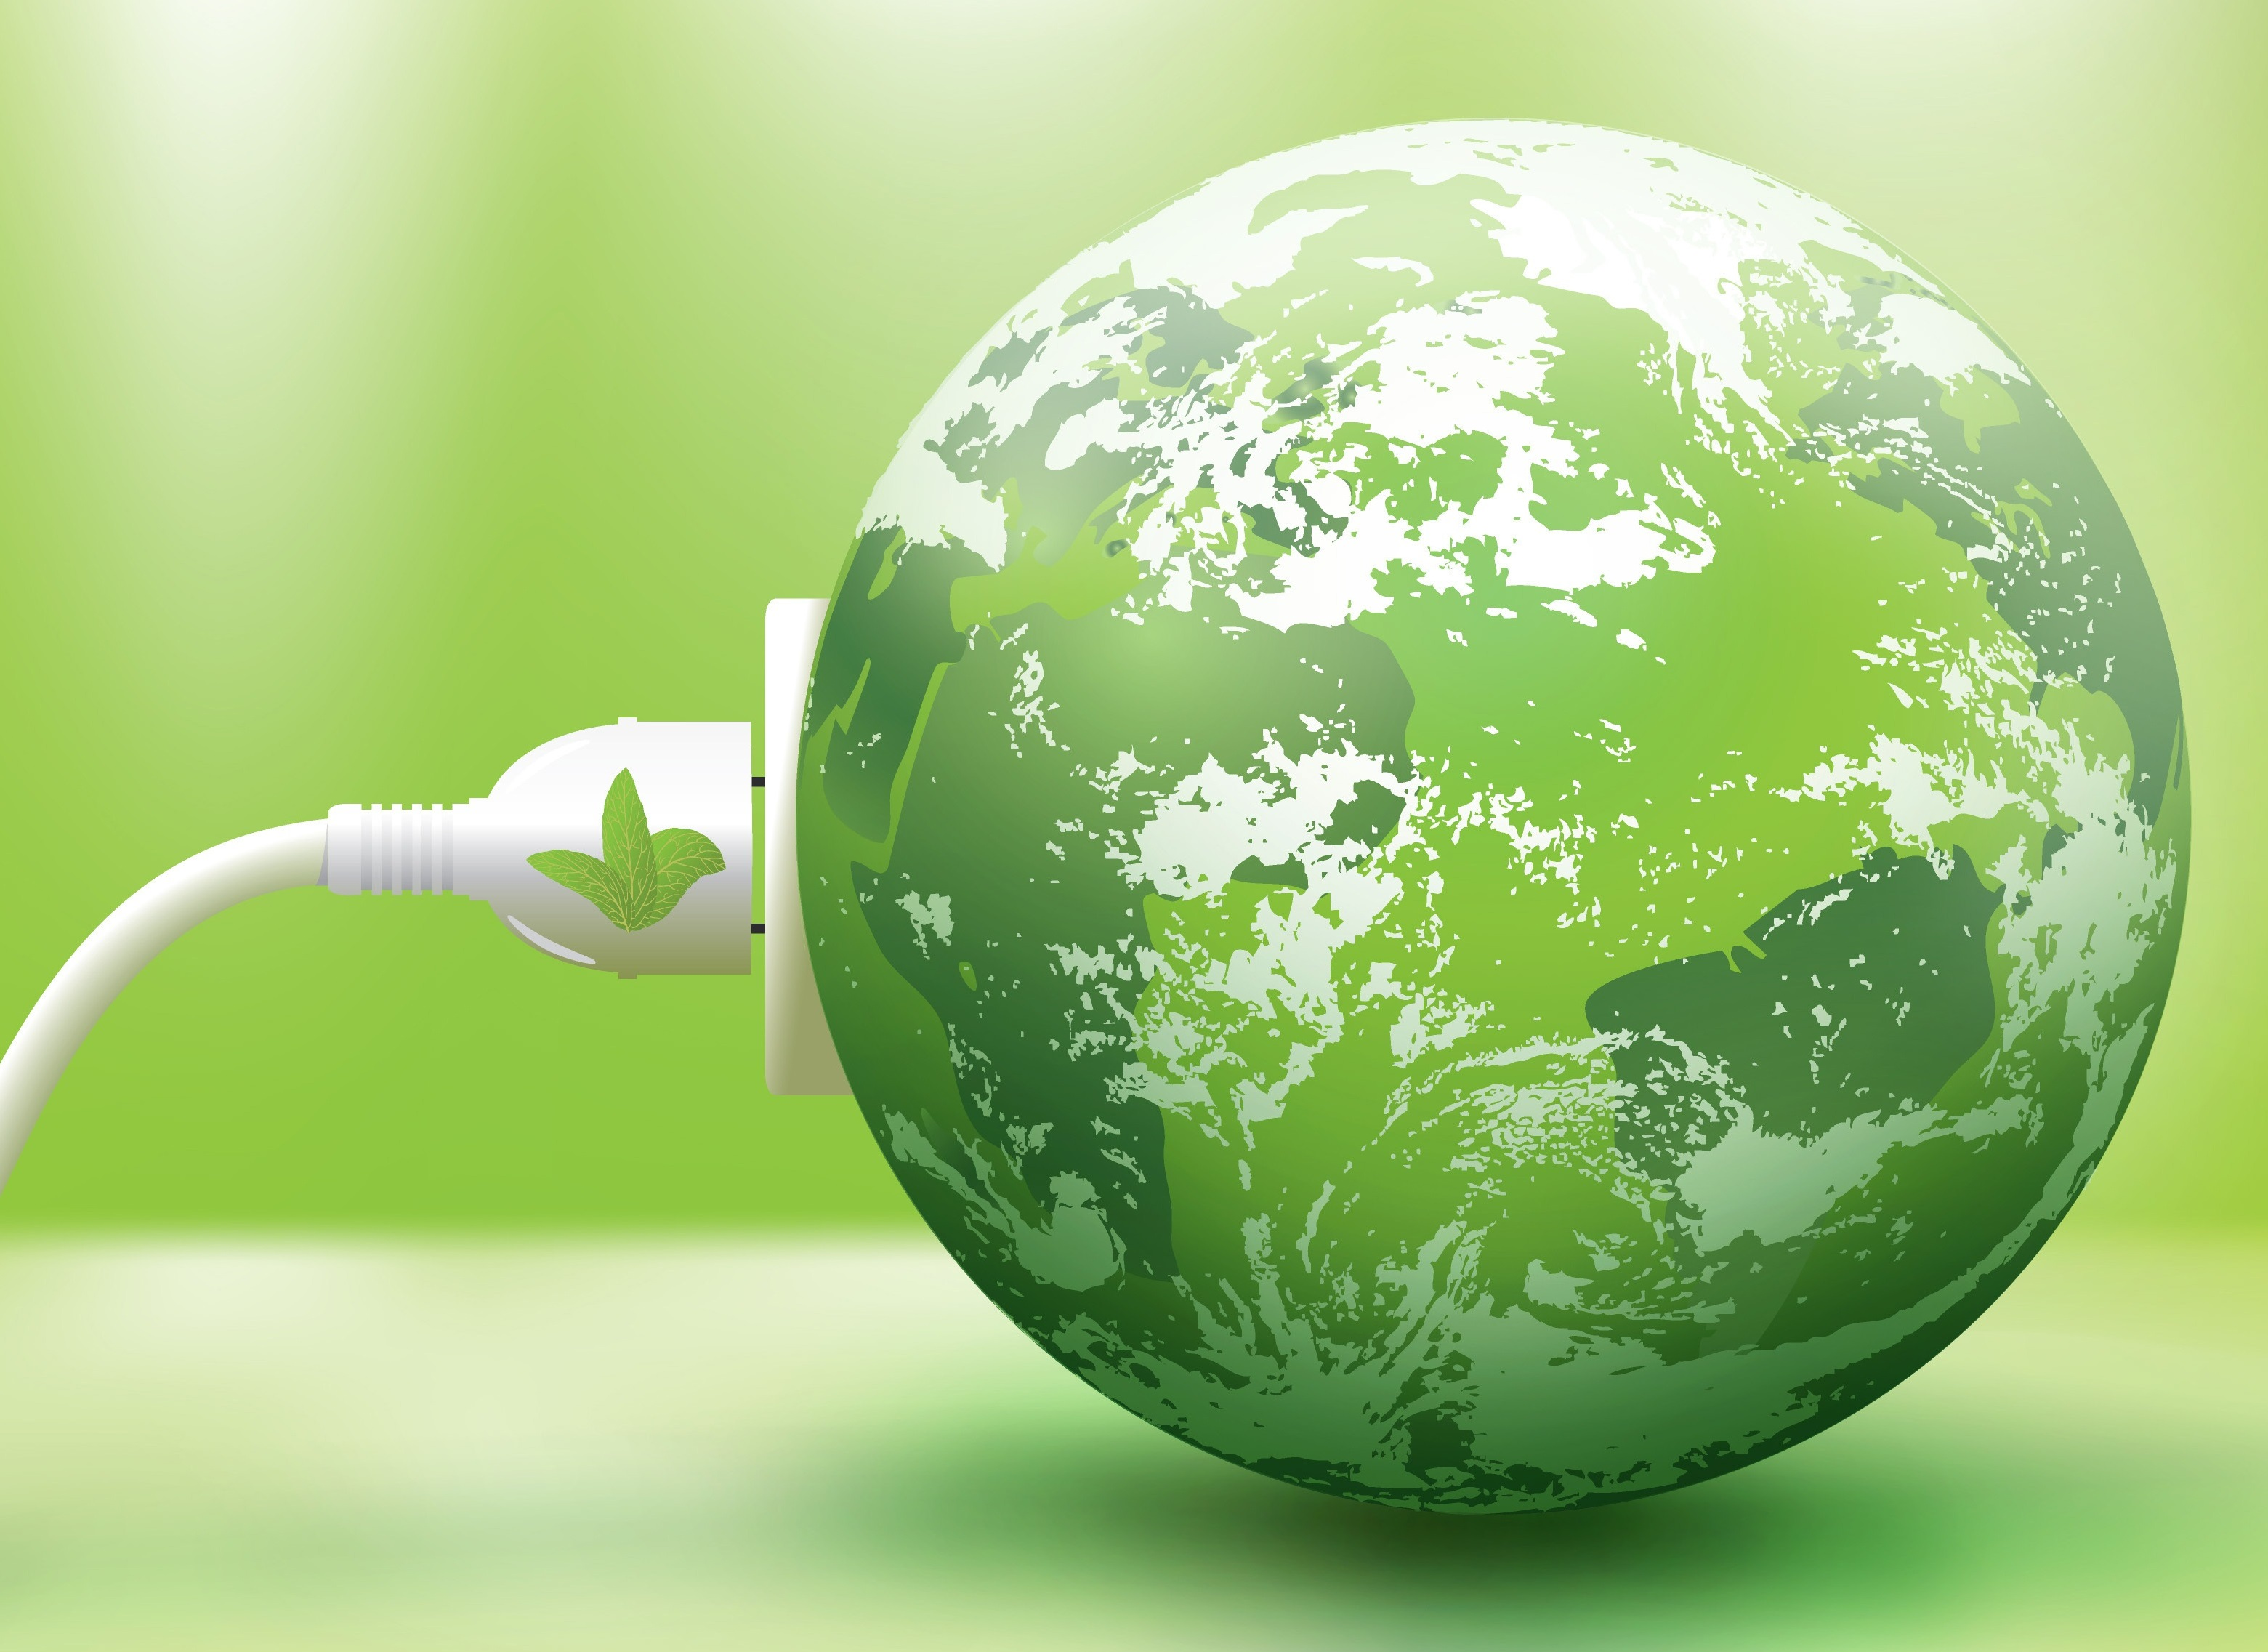 www.sustainablecitiescollective.com